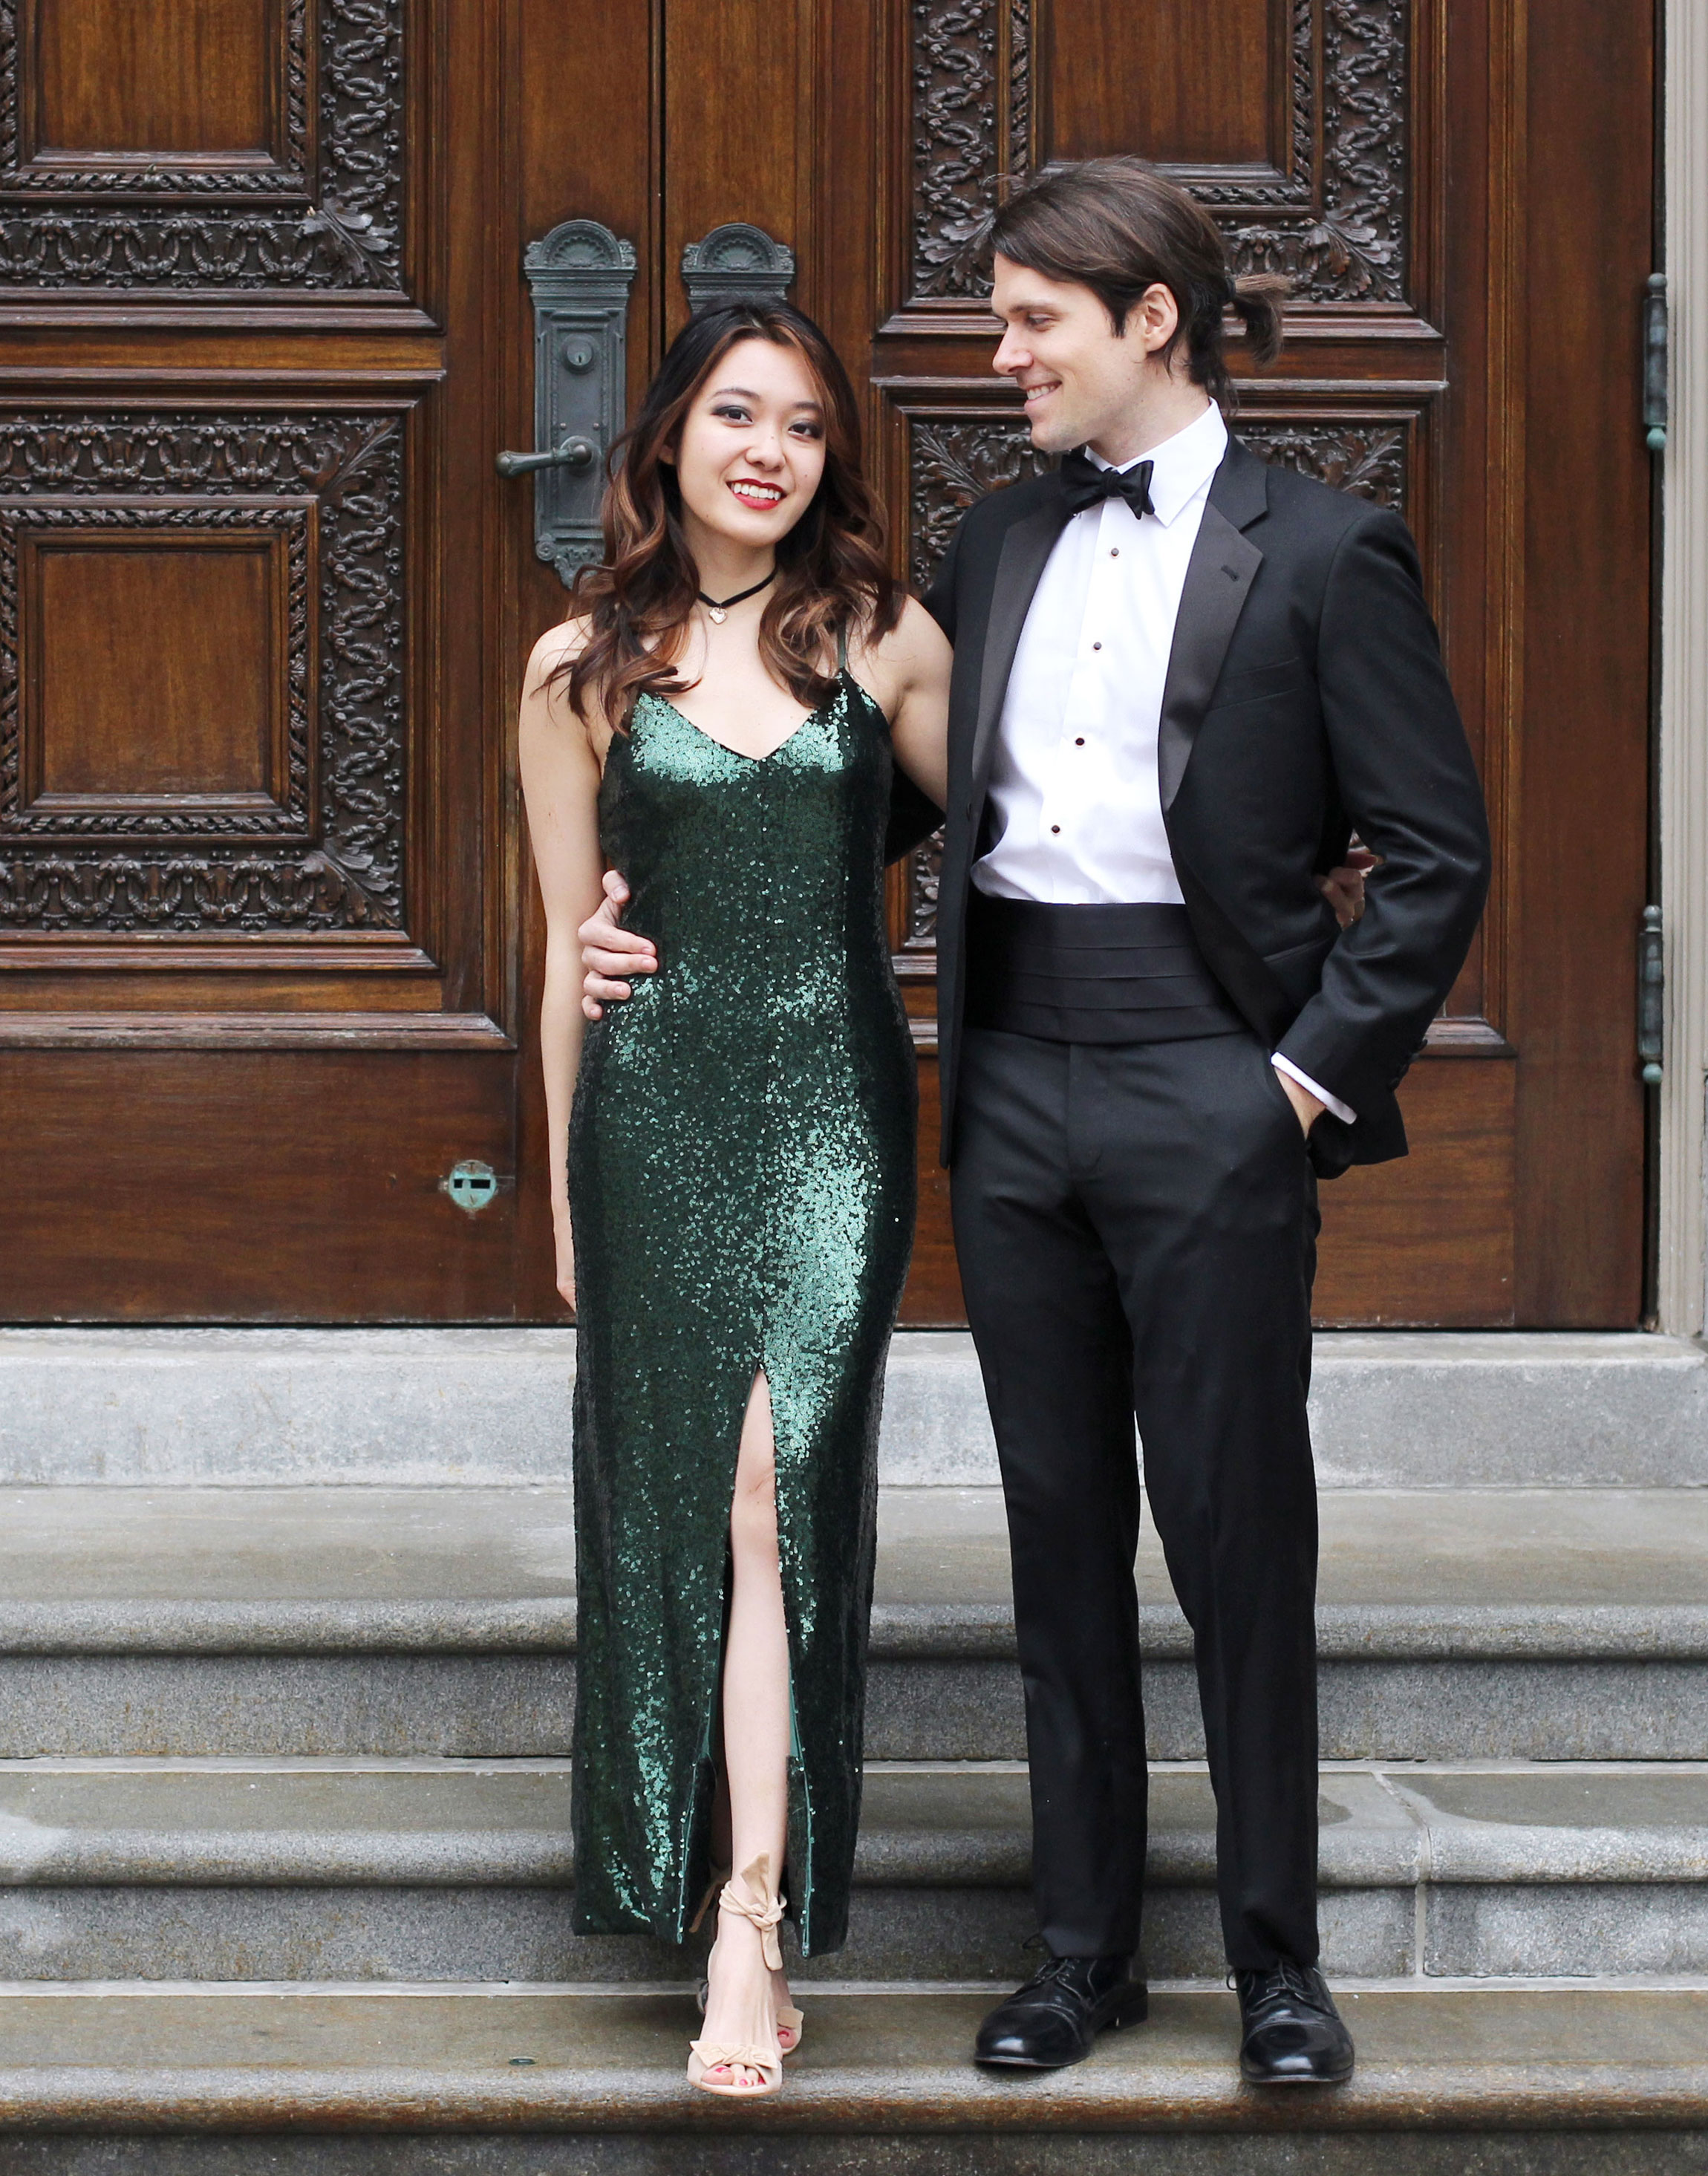 Barristers Ball Harvard law school - black tie formal sequin gown